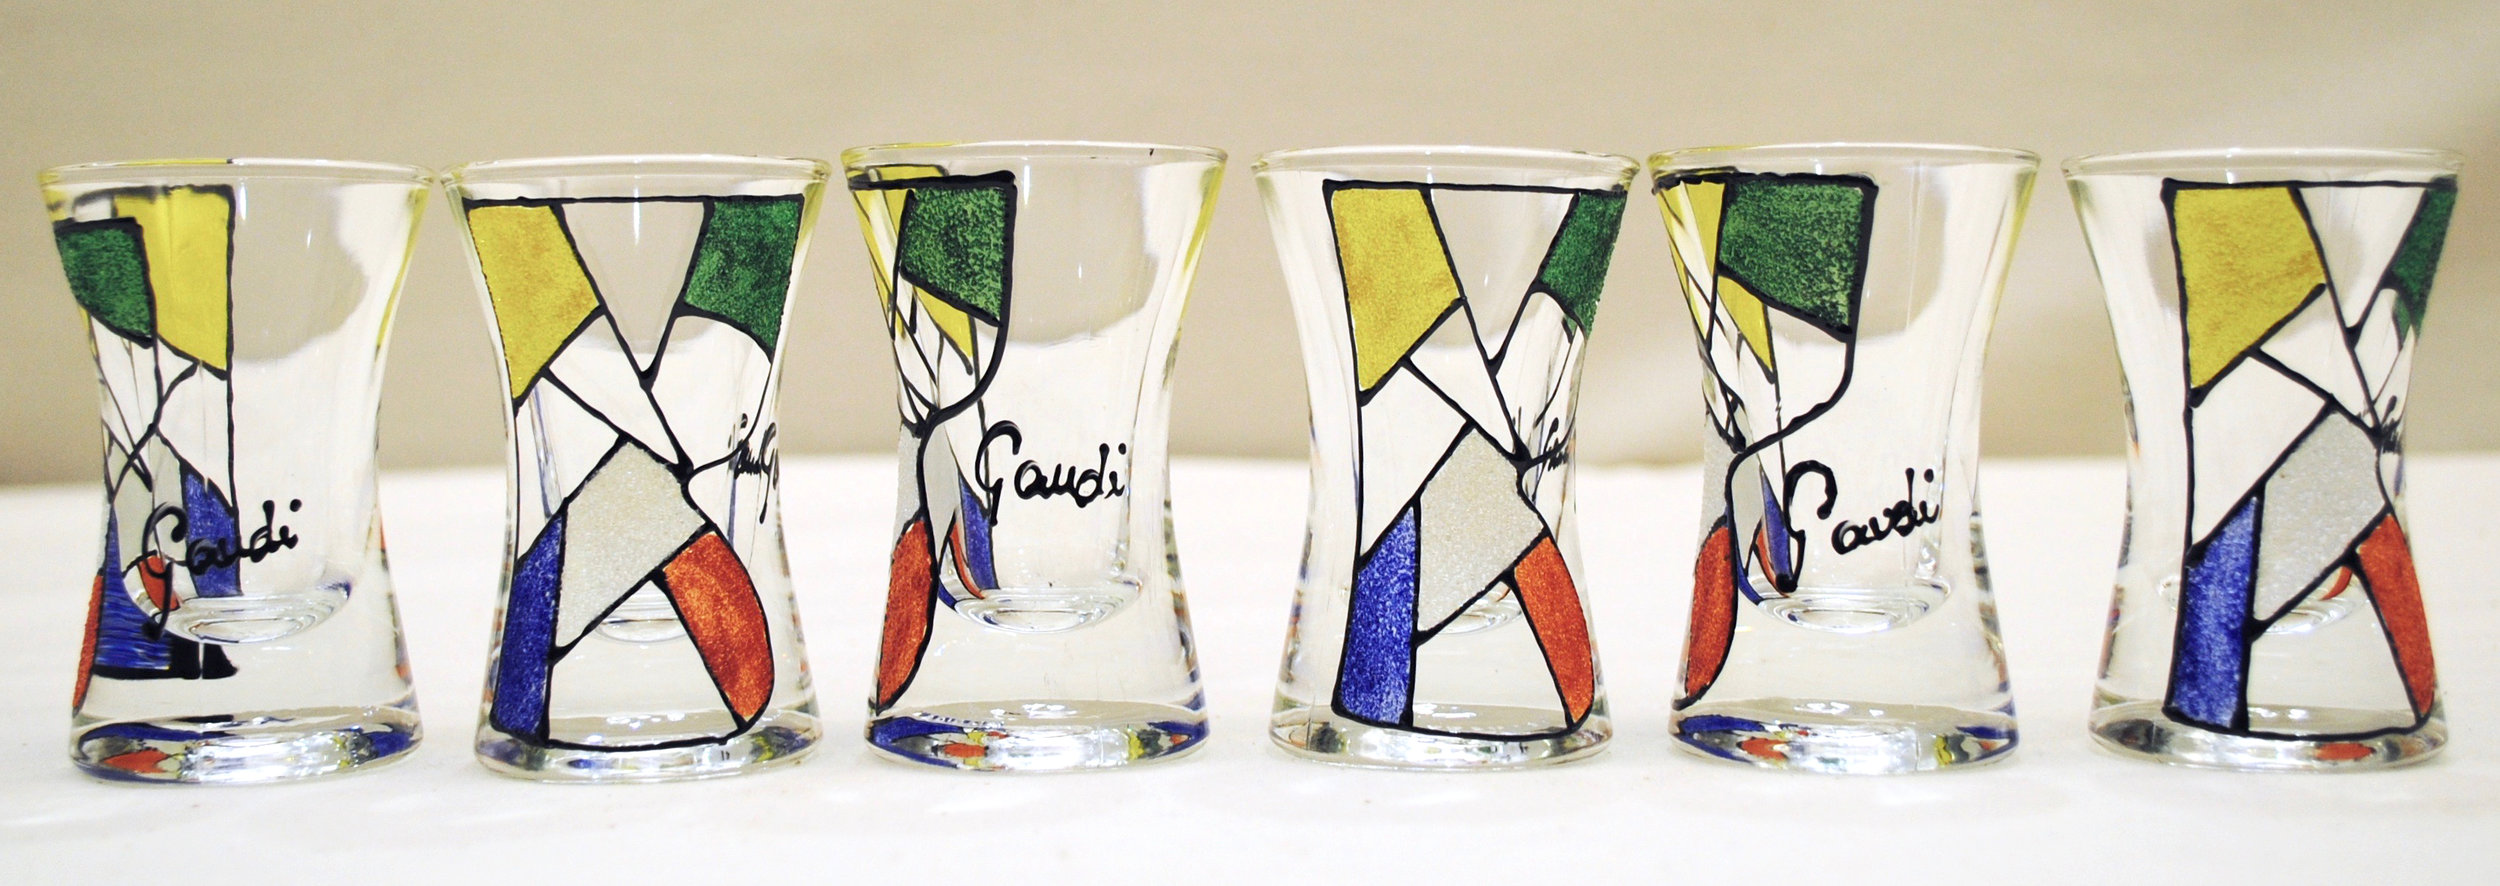 3041_Gaudi Shot Glass_Spain.jpg